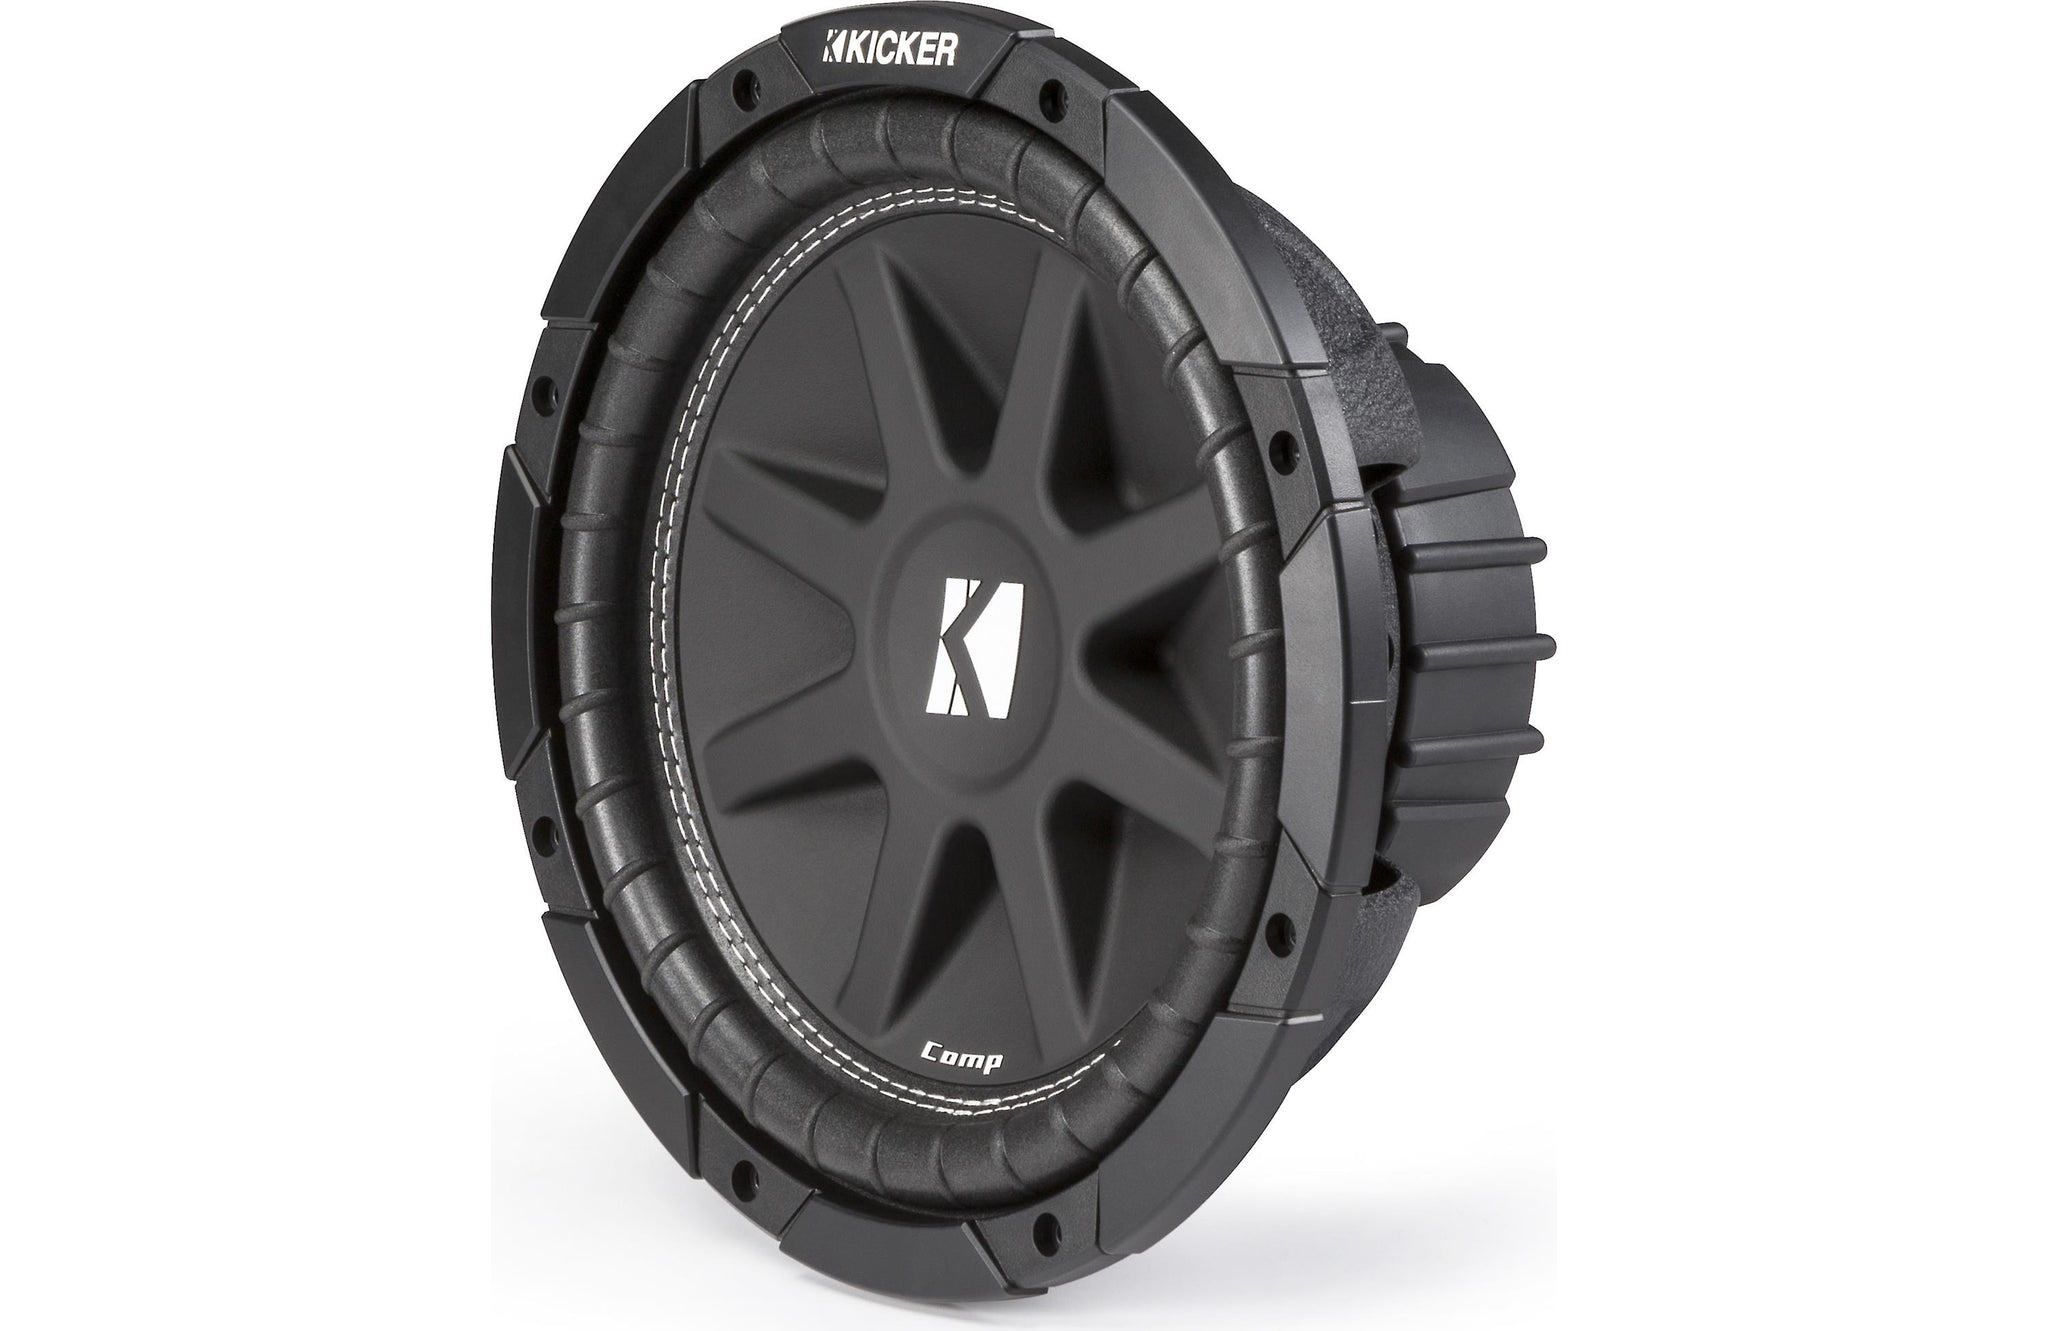 "Kicker 43C104 Comp 10"" 300 Watt SVC 4-ohm Car Audio Subwoofer"